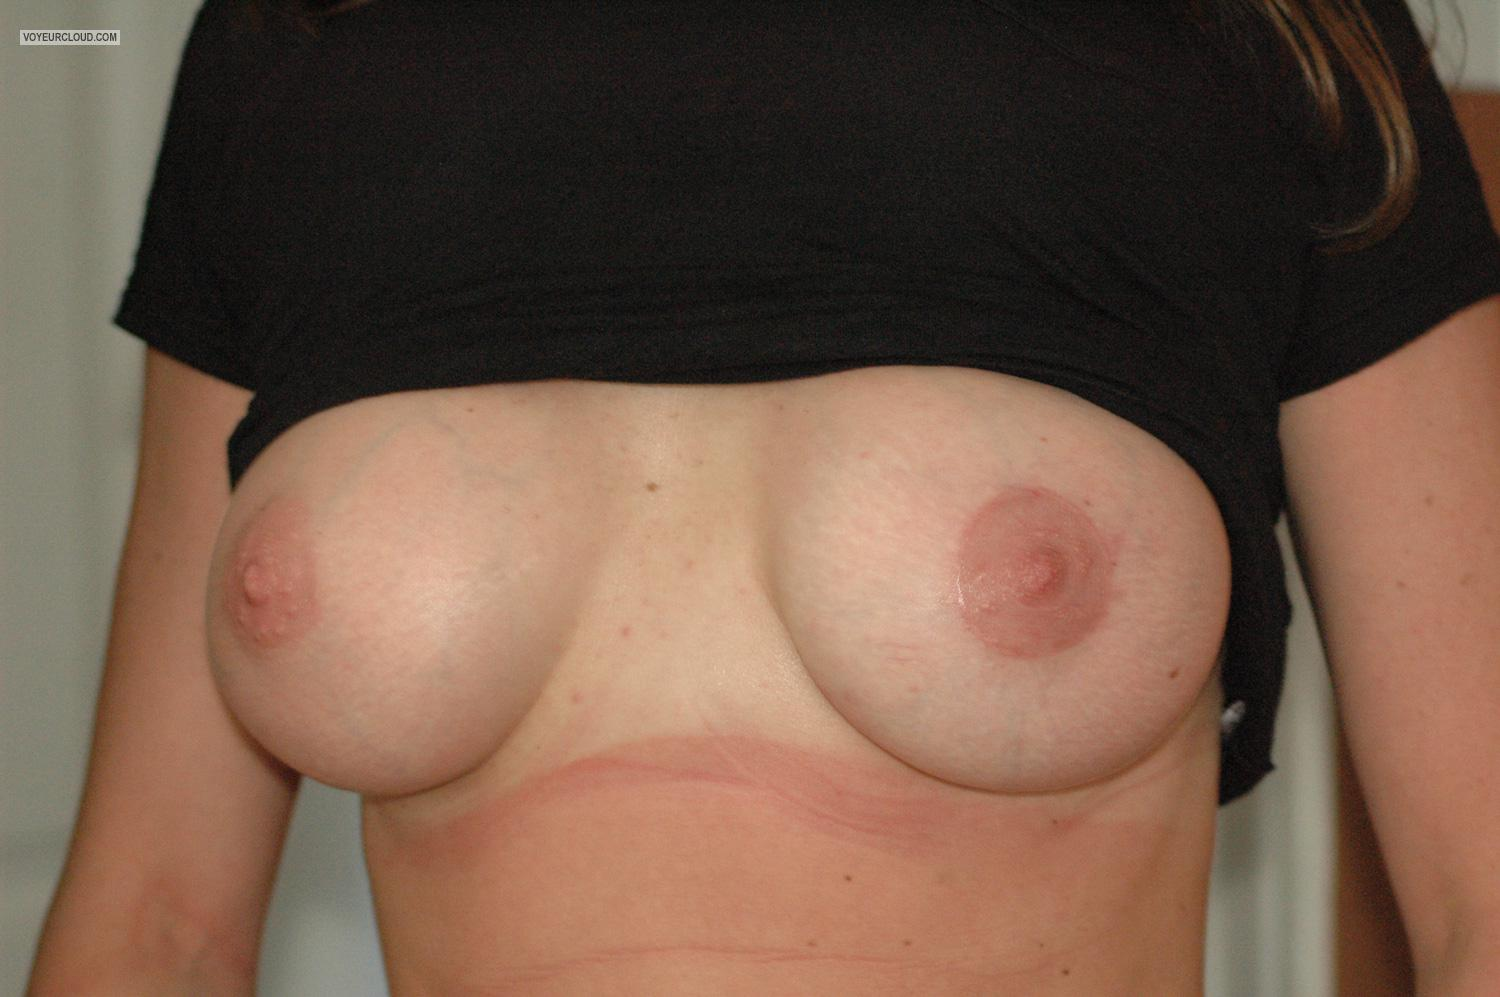 My Big Tits Roundfirmboobs